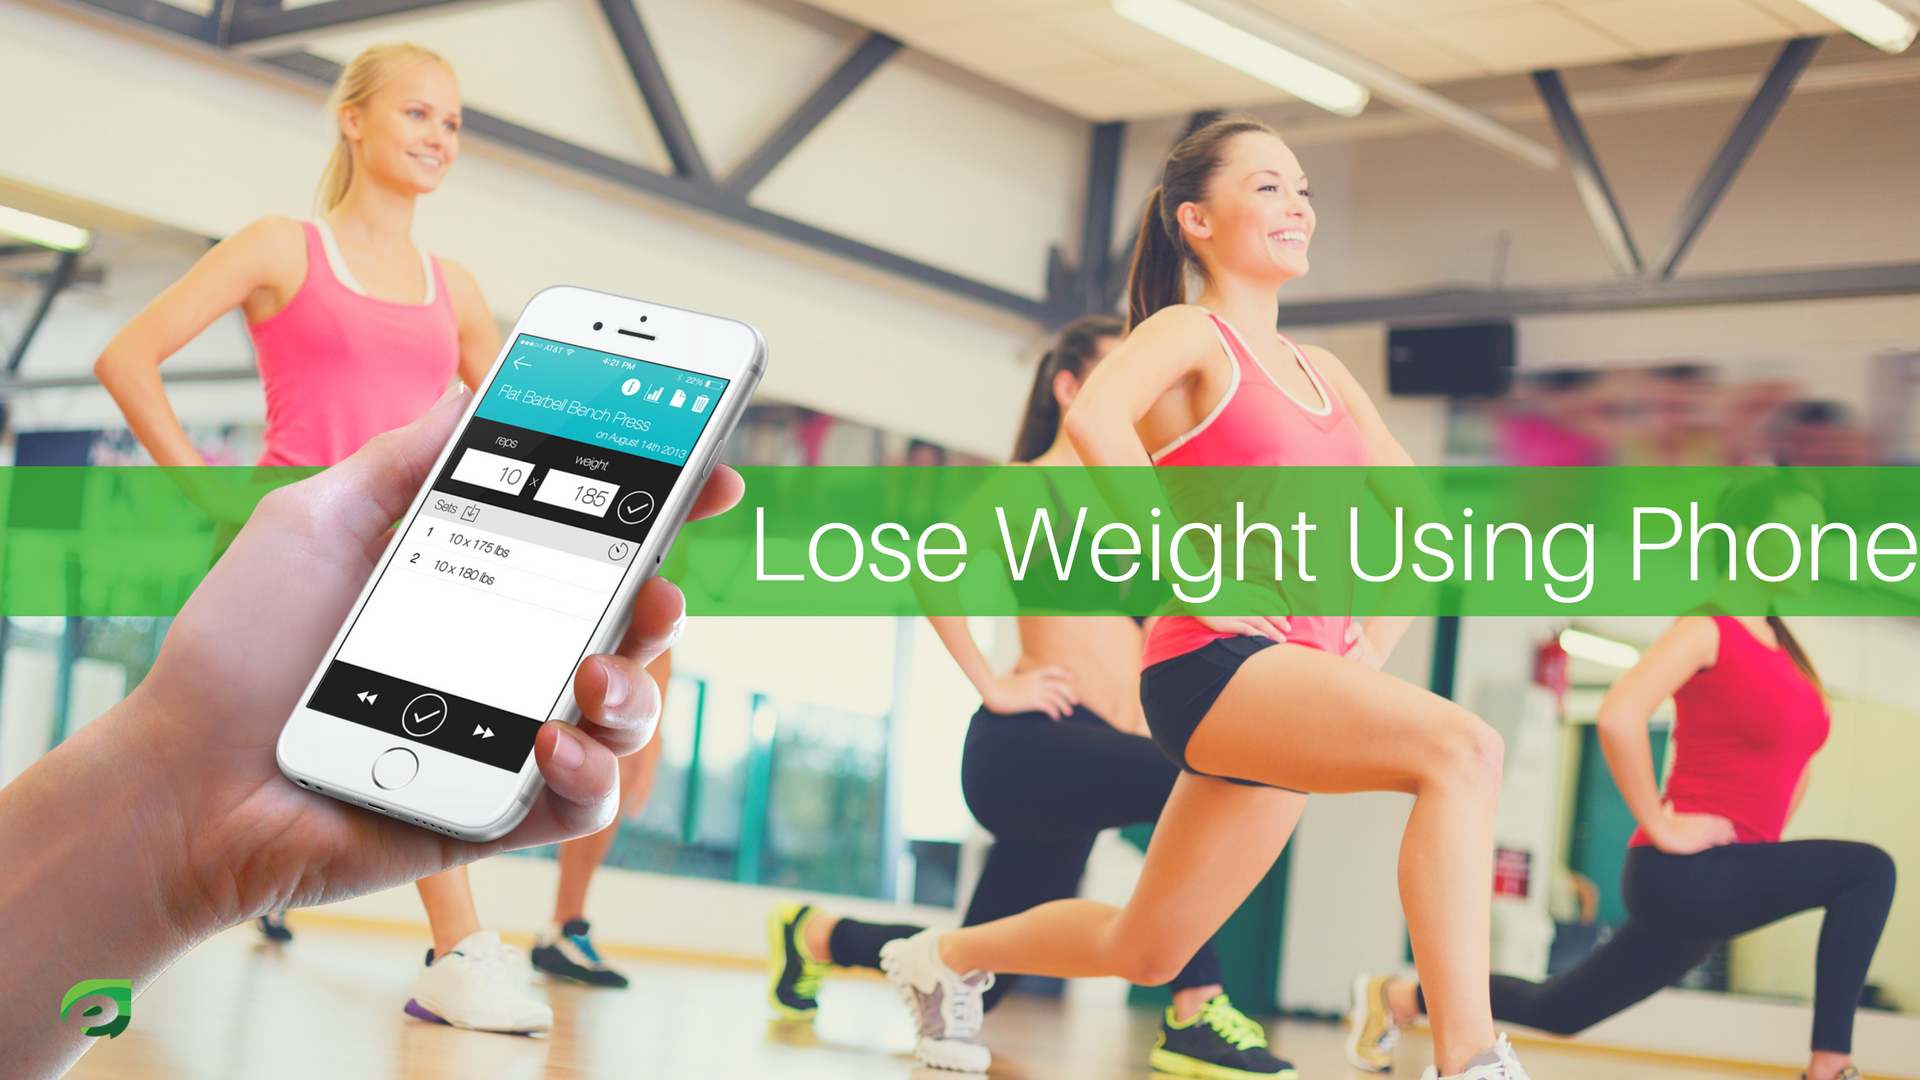 Featured image - Lose Weight using Phone